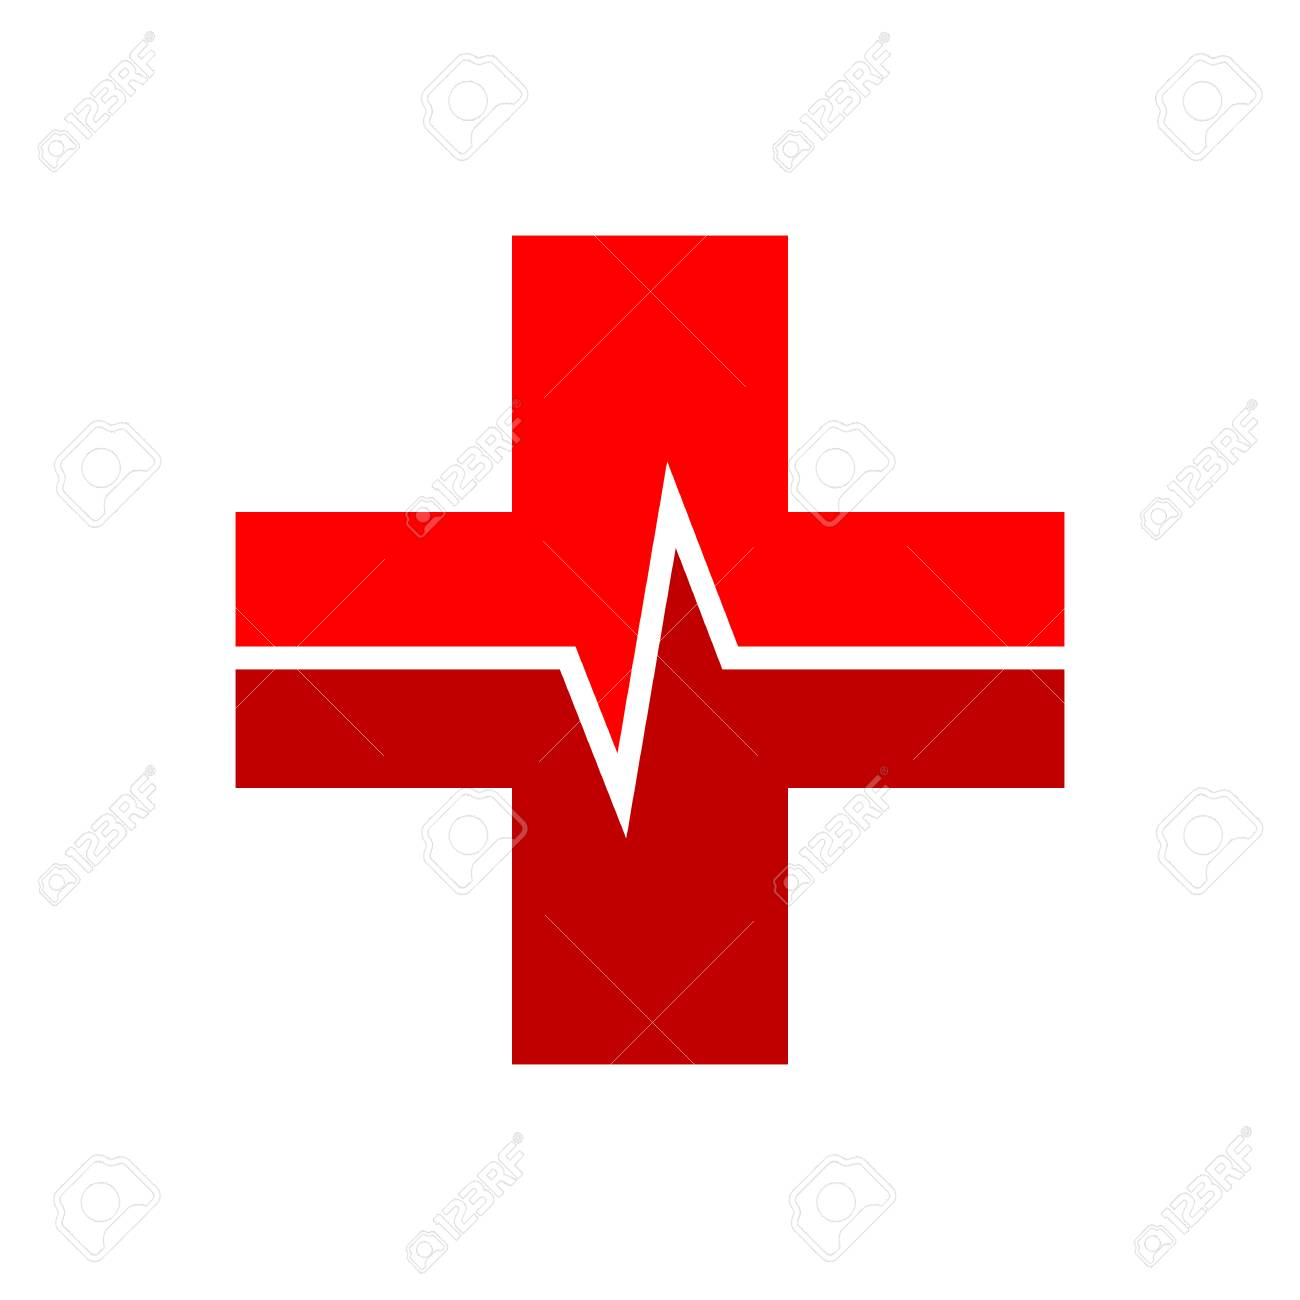 medical cross with heartbeat icon in flat style. vector illustration...  royalty free cliparts, vectors, and stock illustration. image 110570828.  123rf